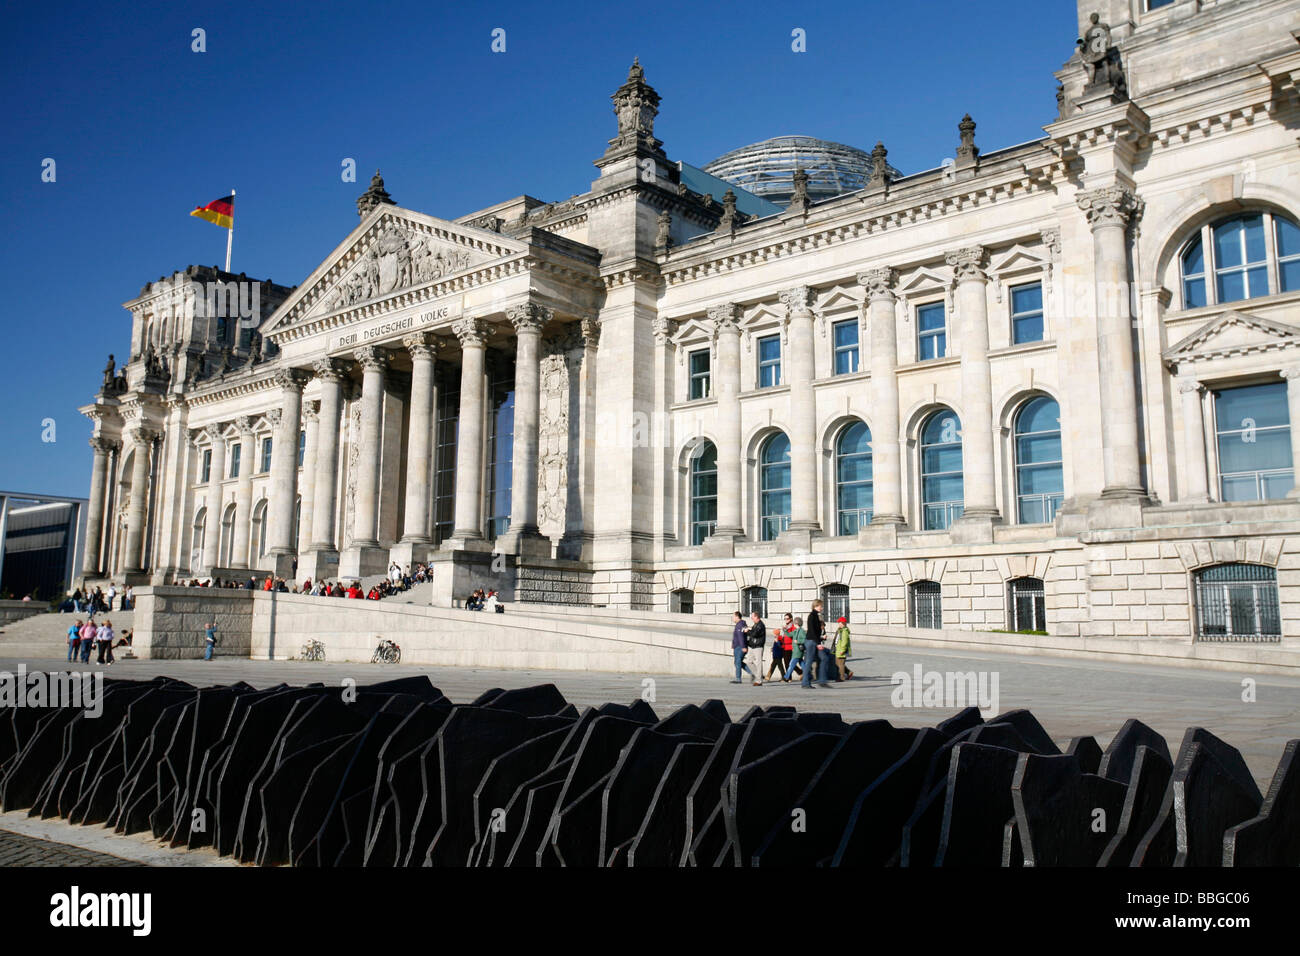 Reichstag parliament building and memorial to the 96 Members of Parliament murdered during the Third Empire, seen - Stock Image